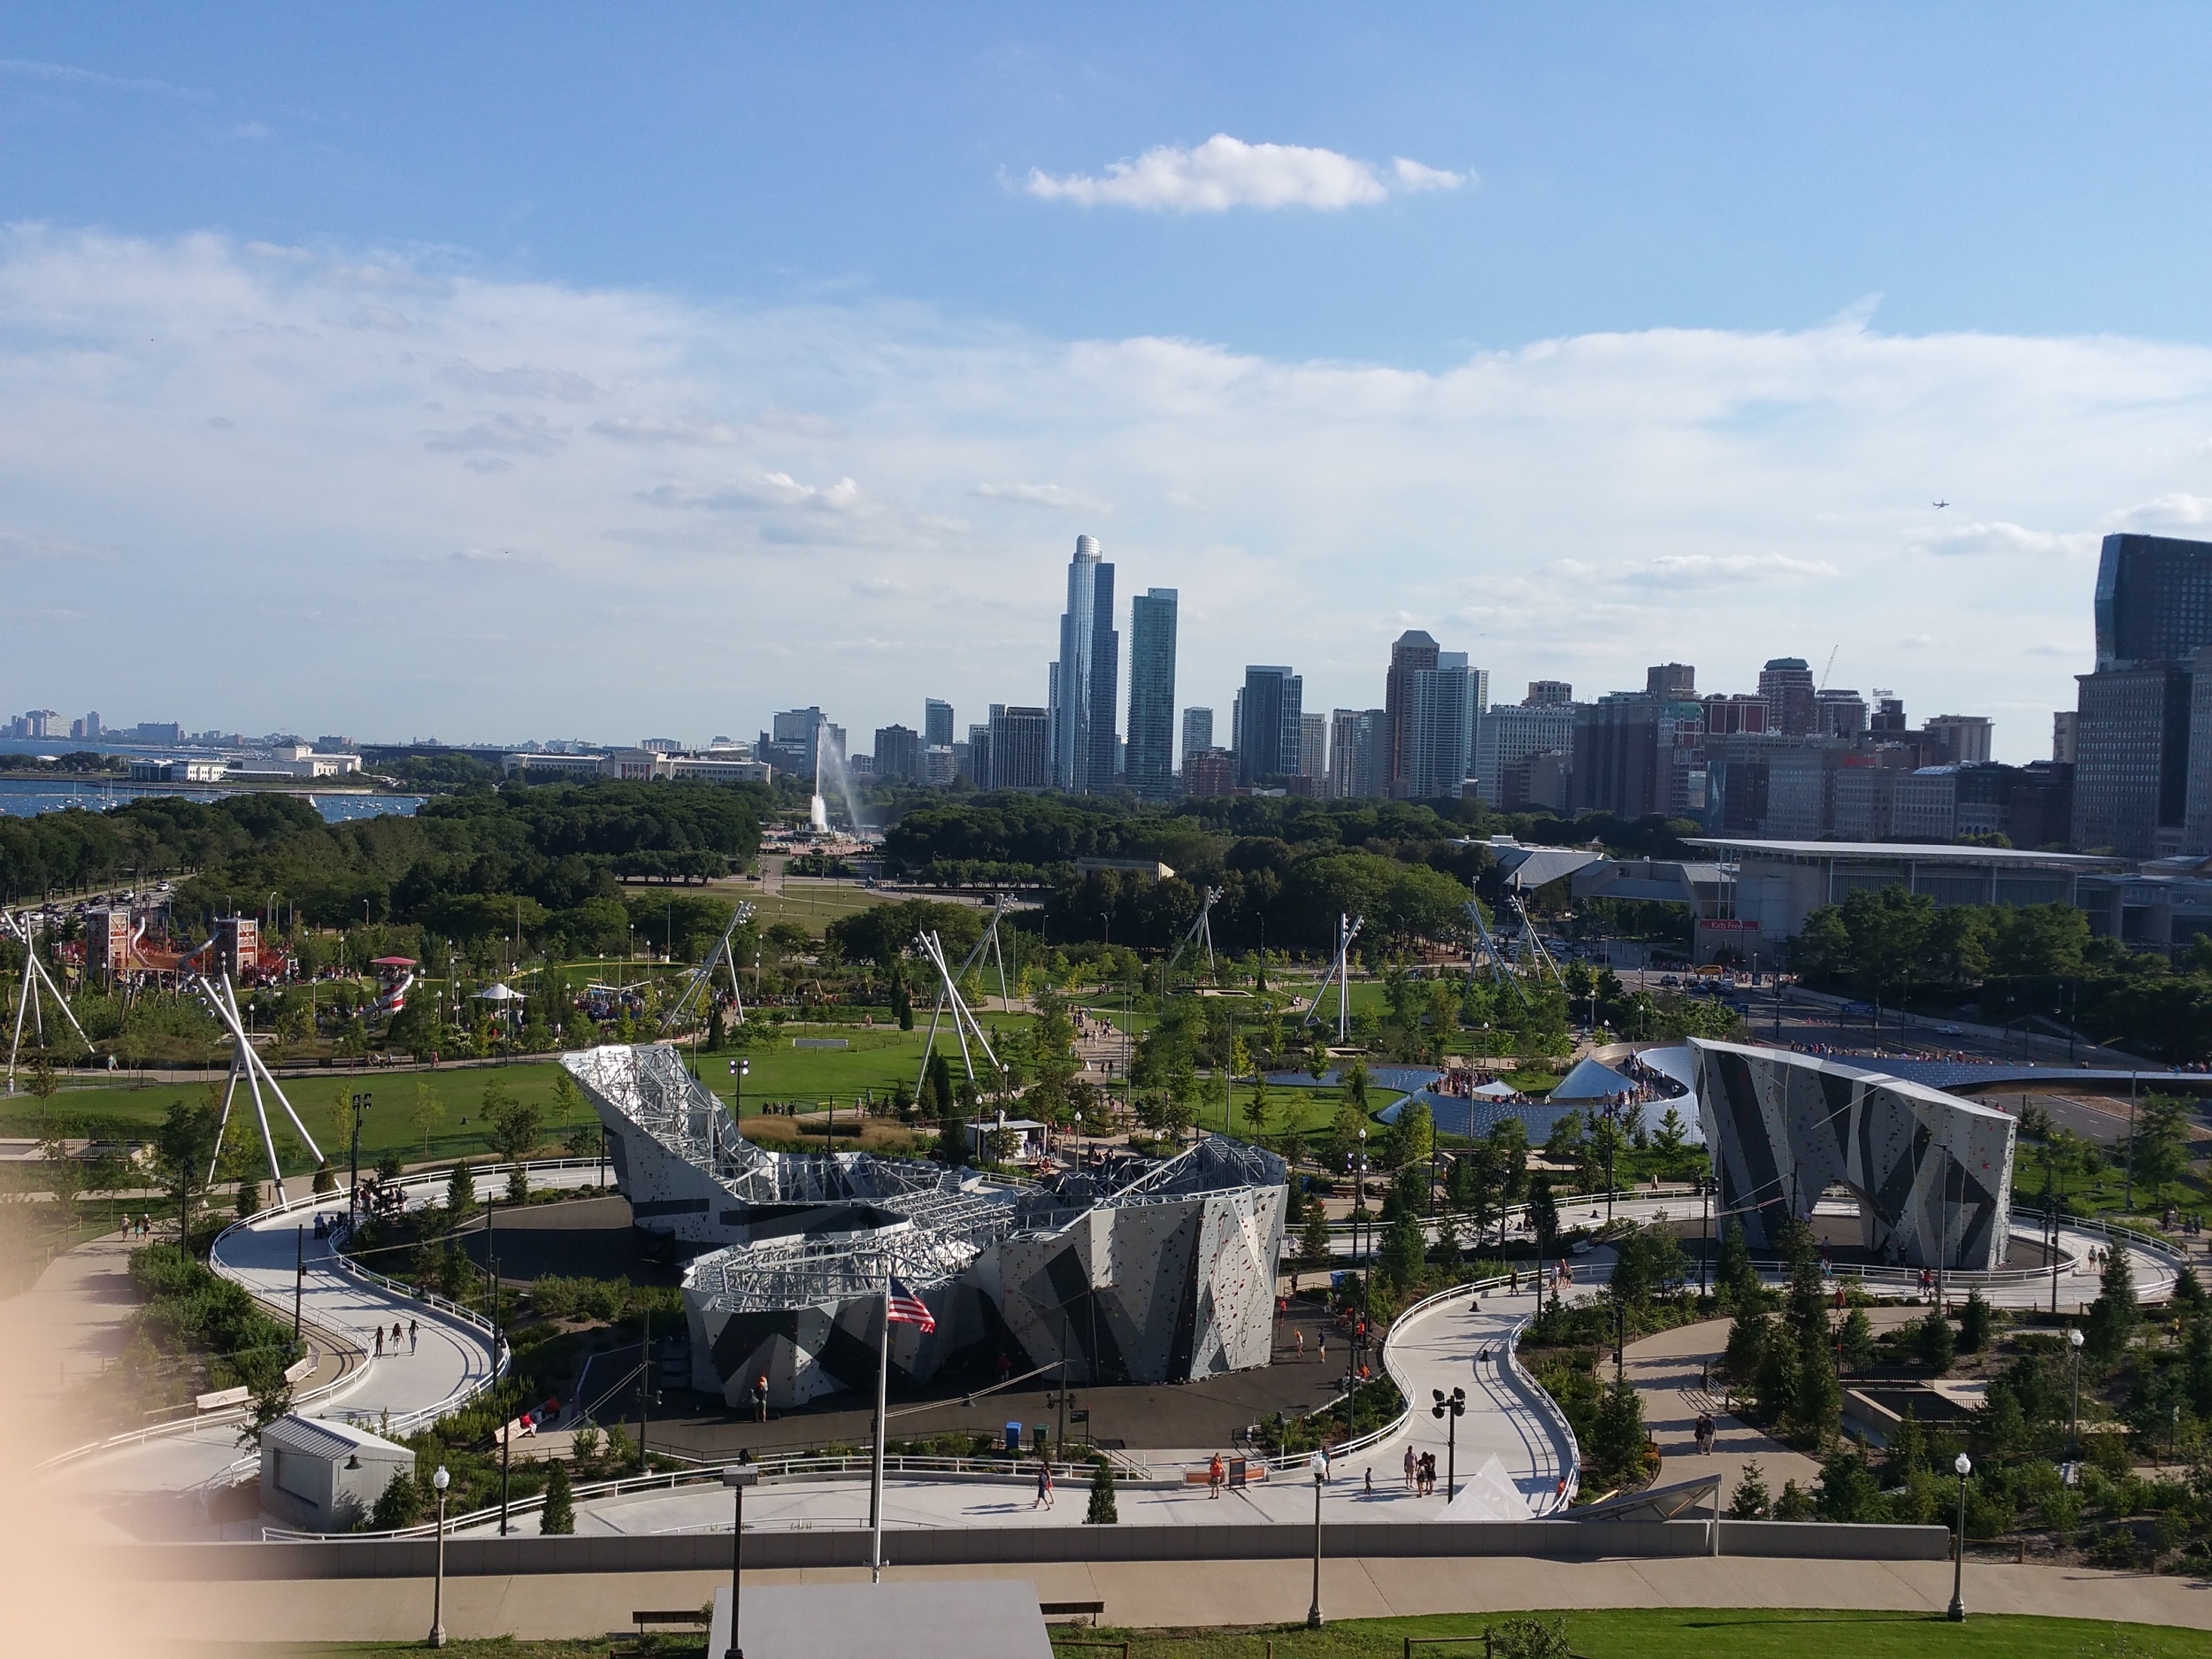 Millennium Park from the Northeast corner looking south with a view of Maggie Daley Park,Buckingham Fountain, the Modern Wing of the Art Institute, the Field Museum of Natural History, and the Shedd Aquarium.